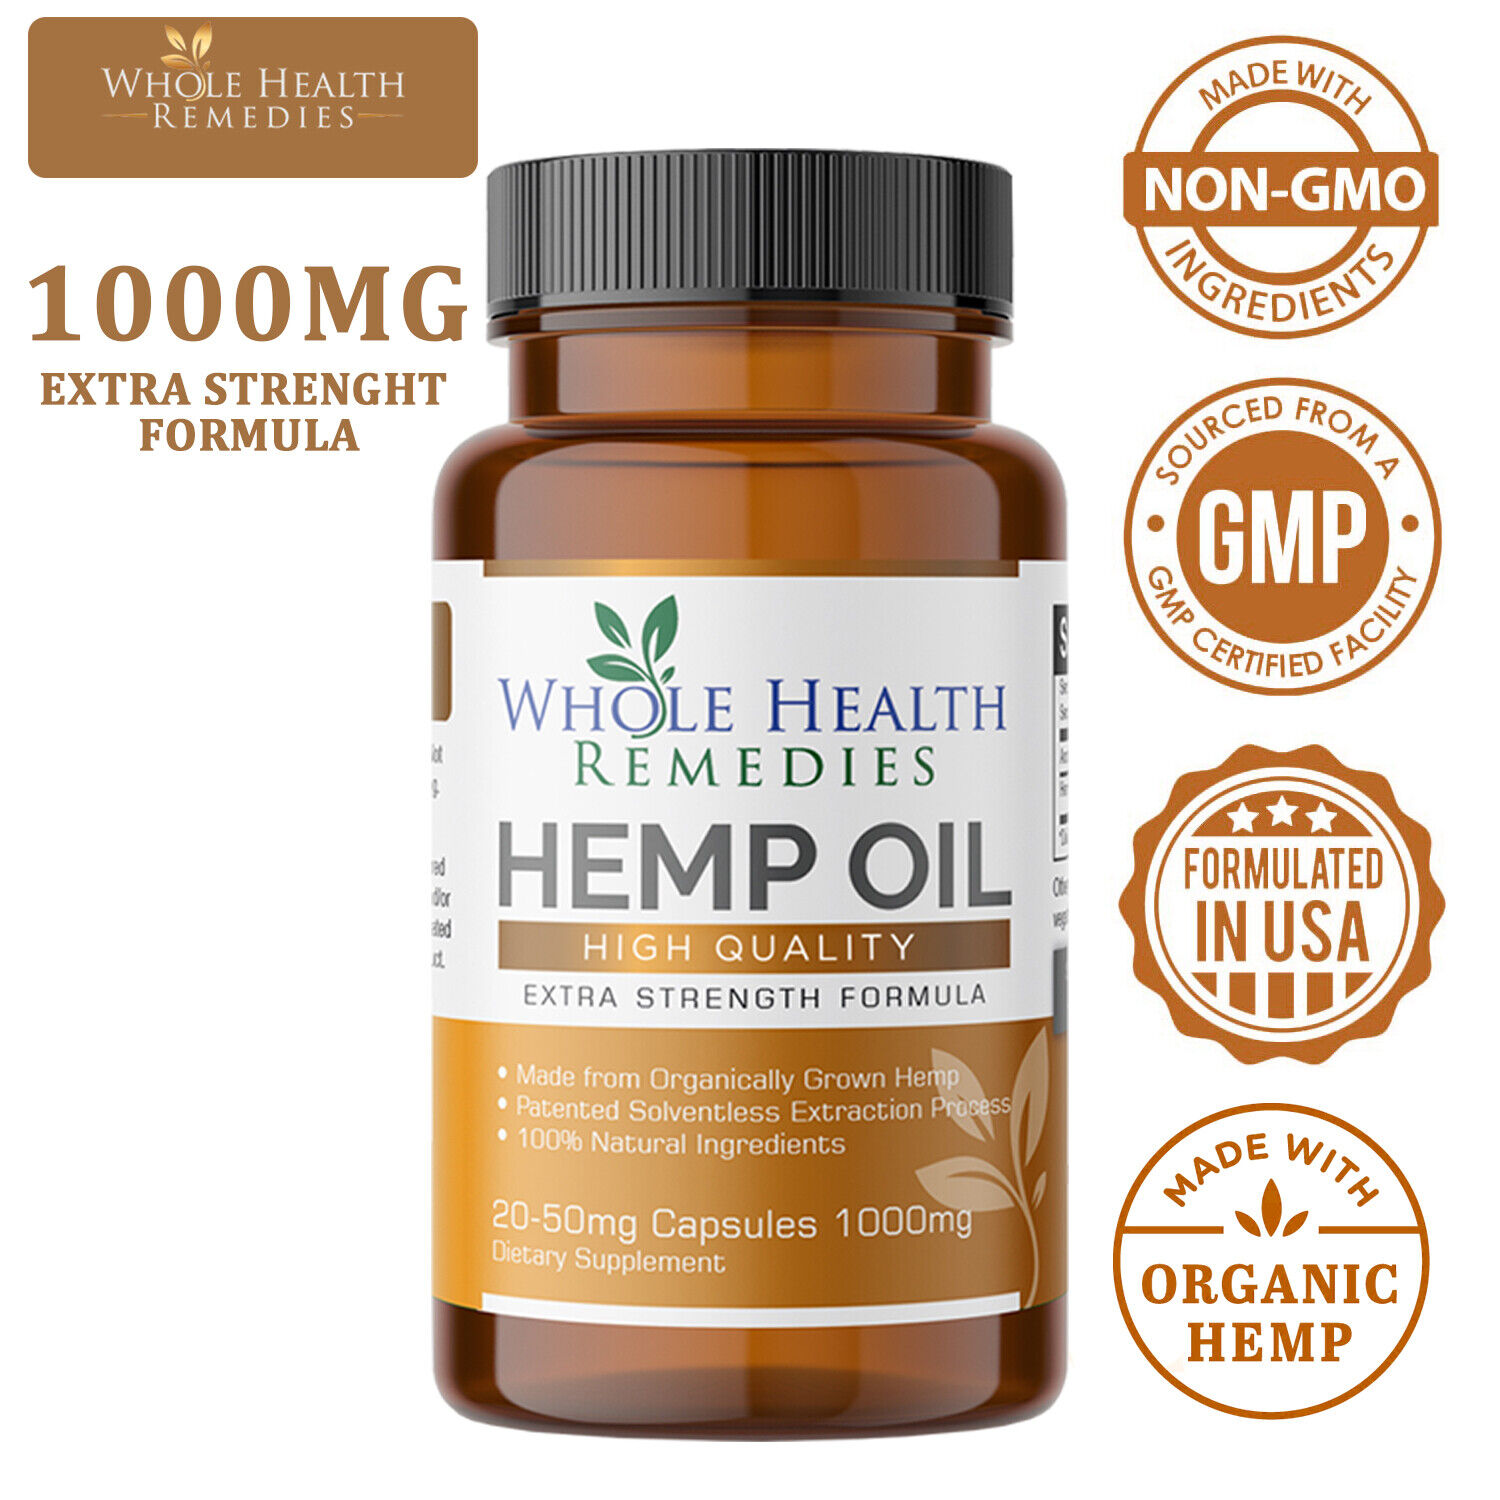 Pharmaceutical-Grade Hemp Oil Capsules for Pain & Stress Relief and Insomnia